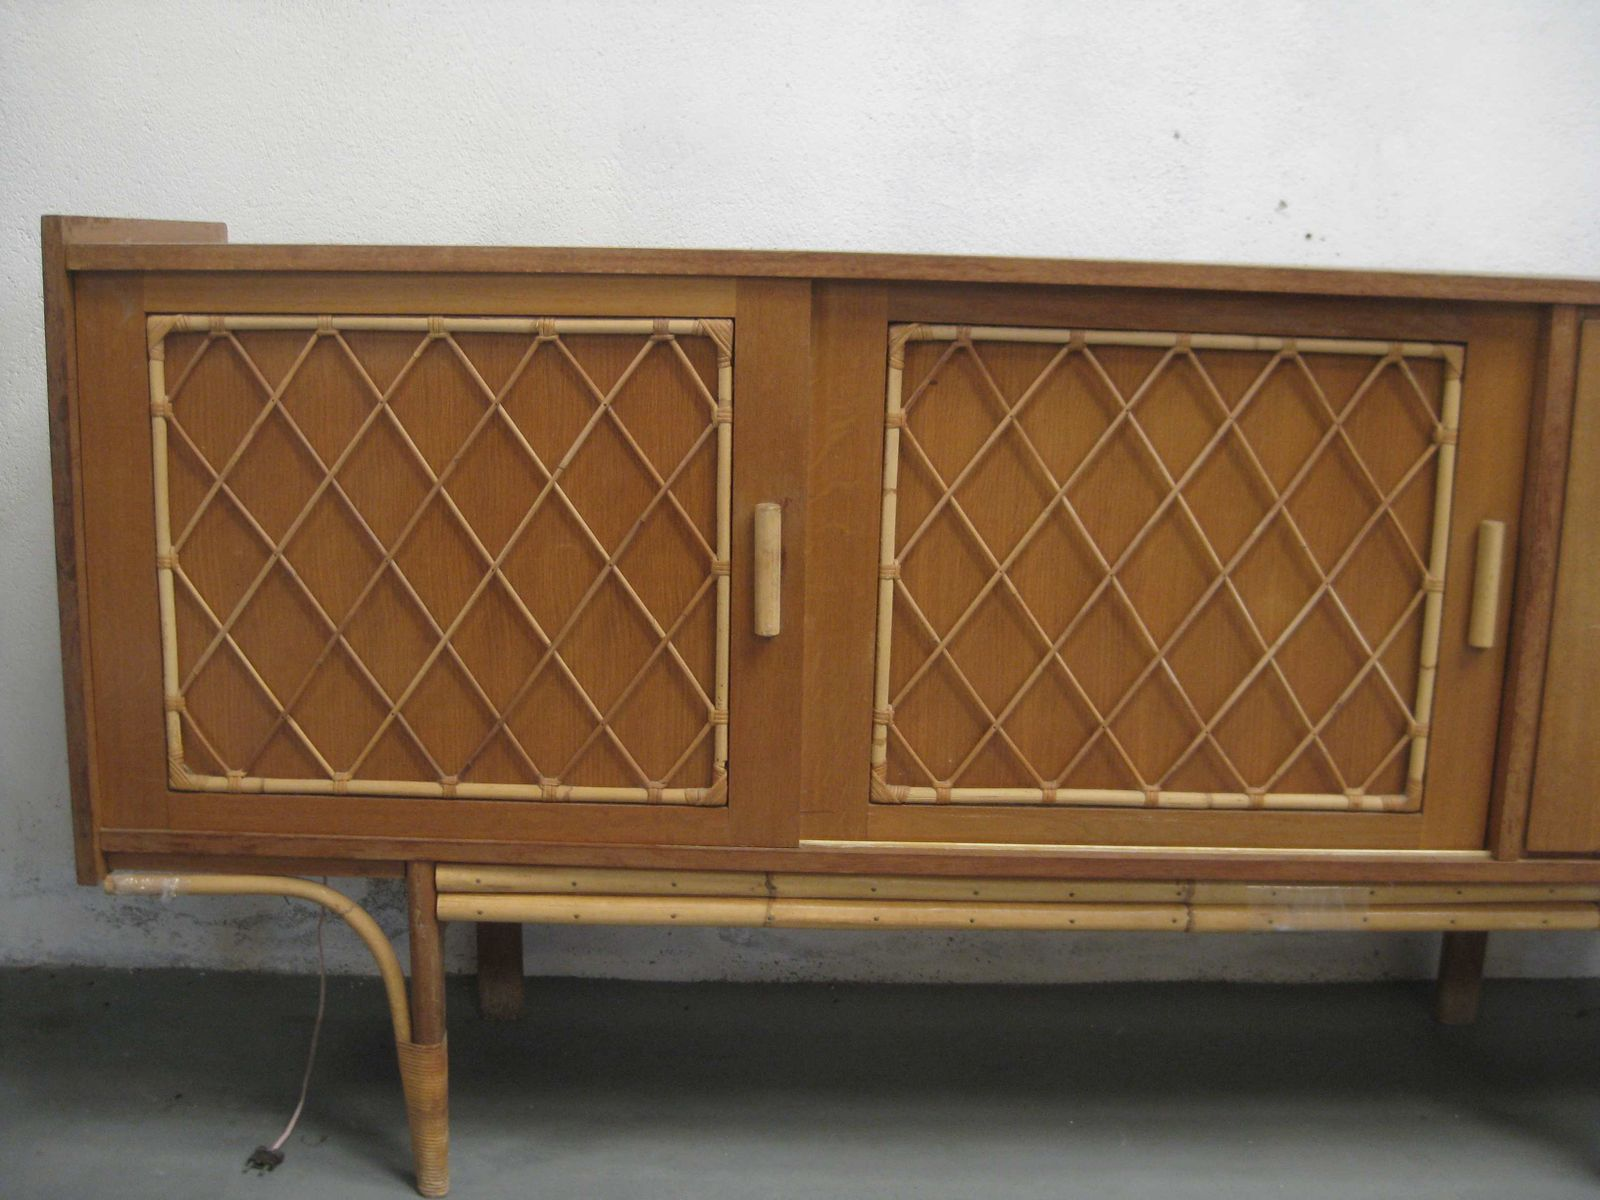 Vintage rattan sideboard 1960s for sale at pamono for Sideboard rattan